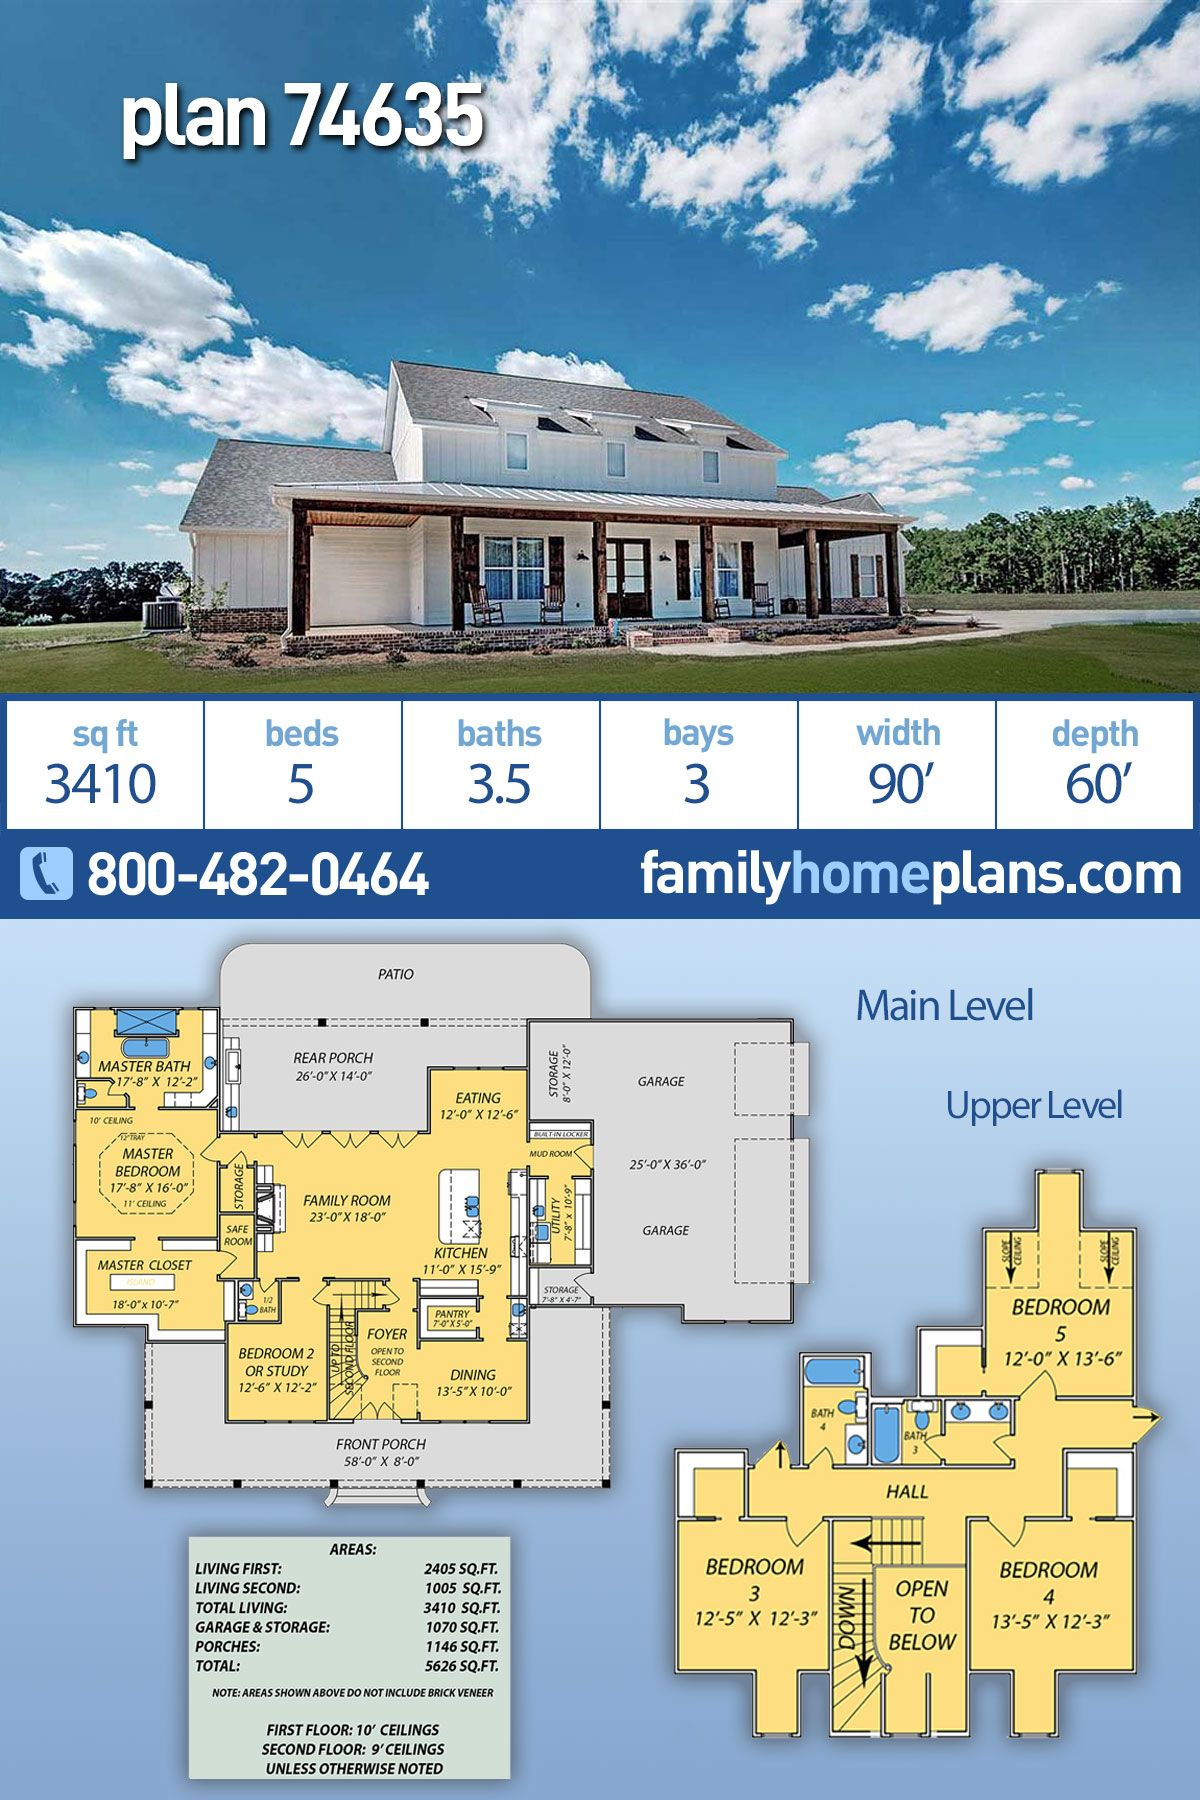 French Country Style House Plan 74635 With 5 Bed 4 Bath 3 Car Garage Country Style House Plans Farmhouse Style House Plans House Plans Farmhouse